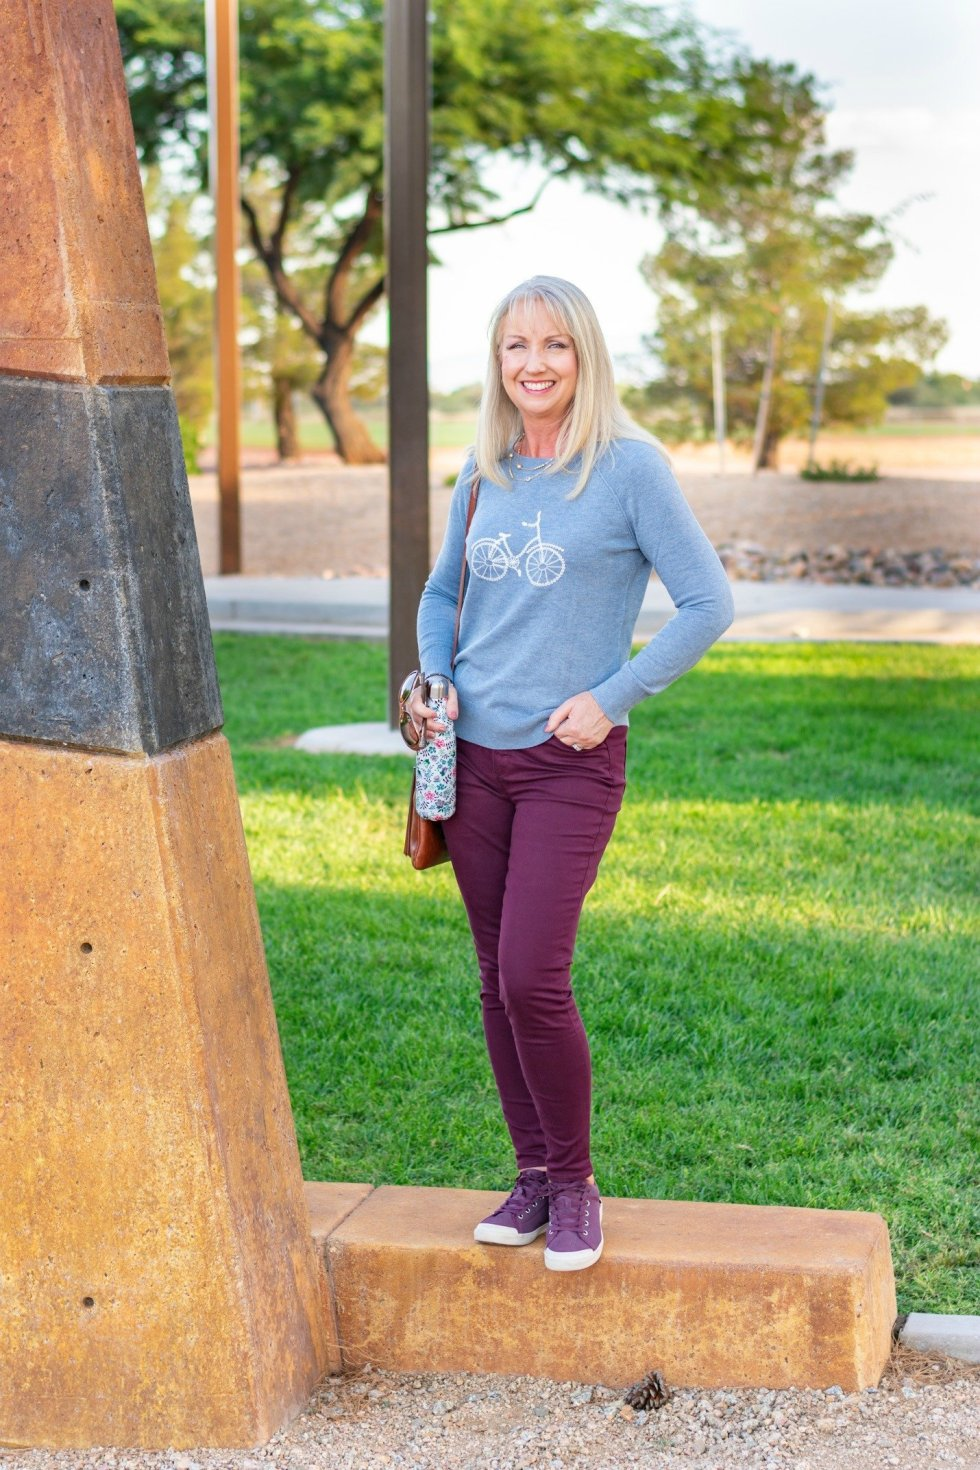 Fun Pullover + Merlot Jeans for a Casual Fall Look